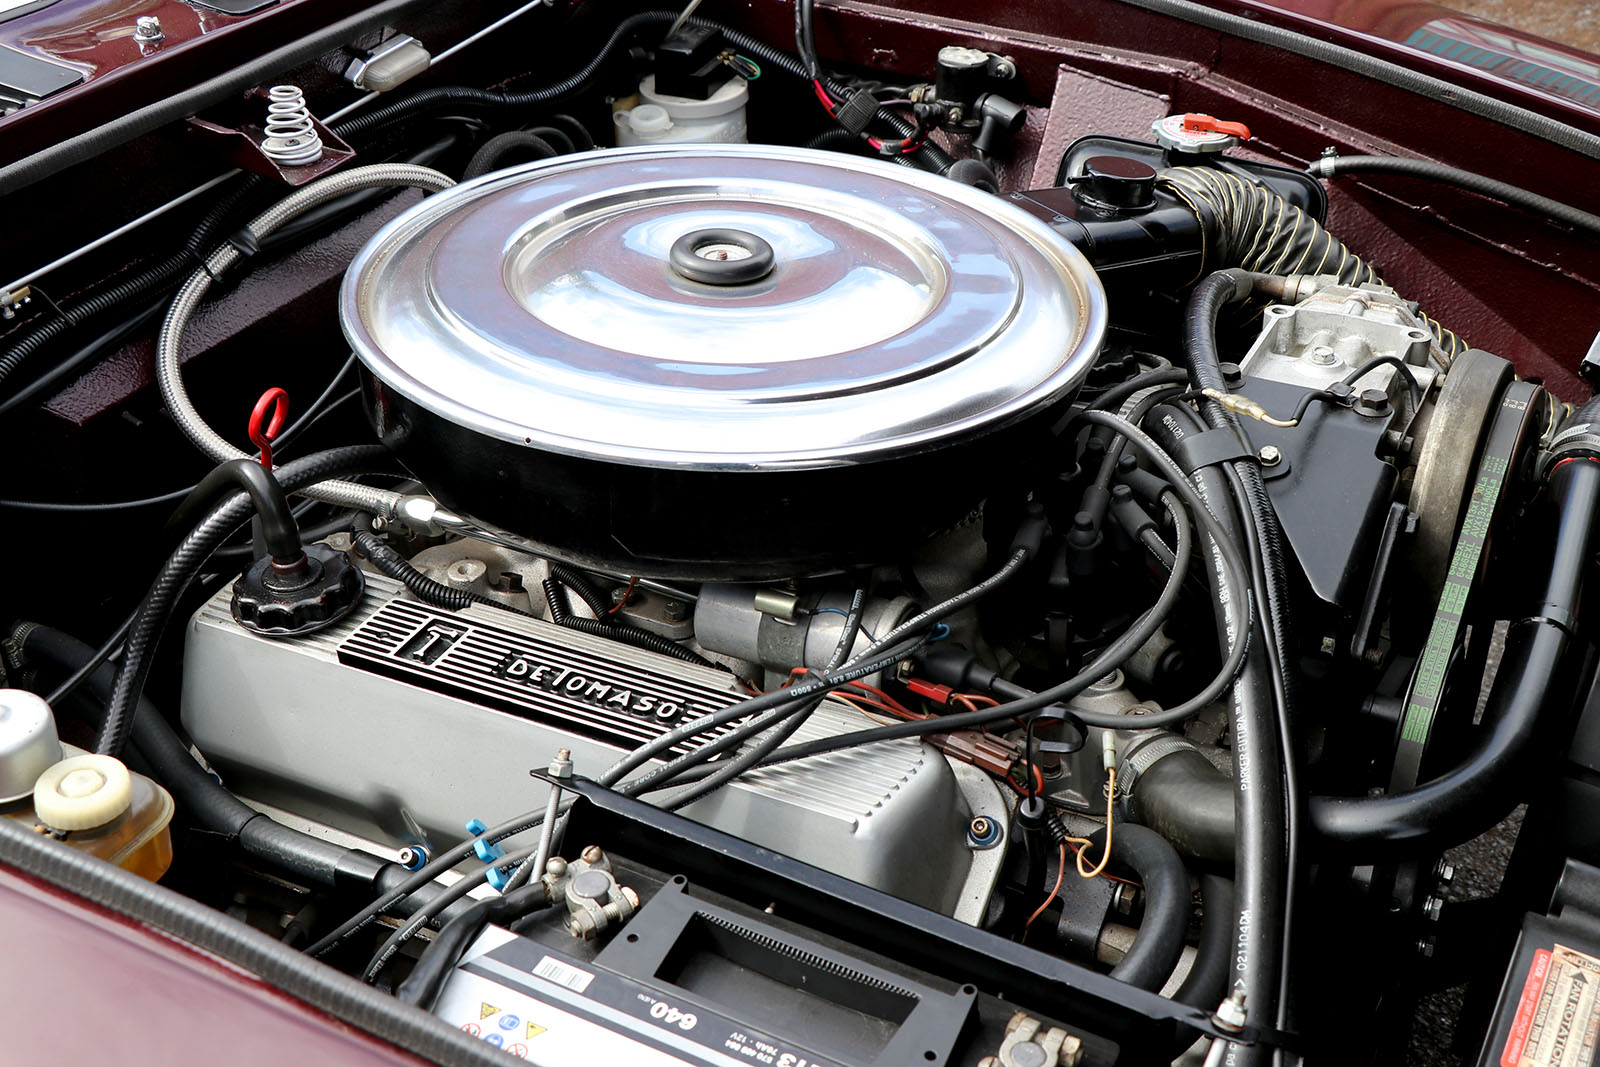 1982 series 2 burgundy deauville engine 1 web.jpg